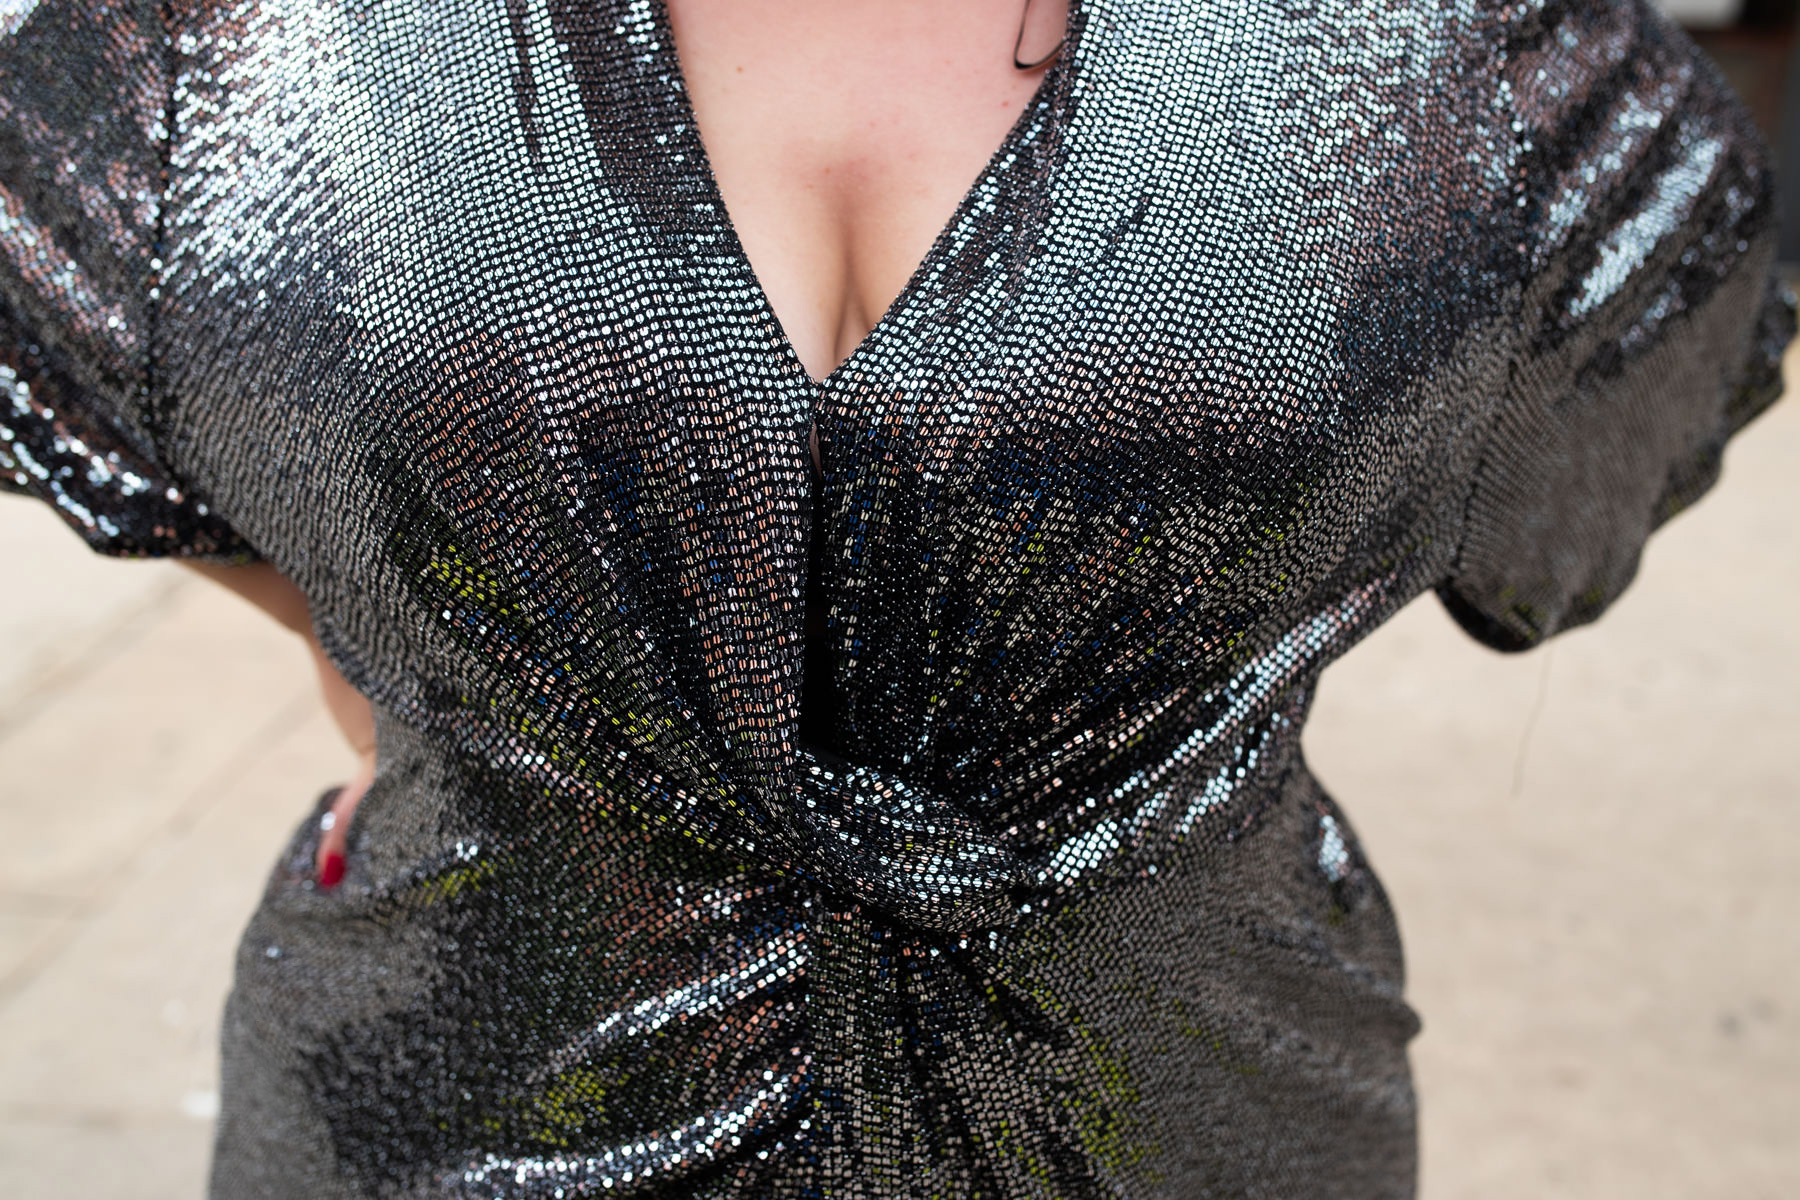 robe fêtes paillettes grande taille party sequins curvy girl virginie grossat fashion blogger lyon ronde fat grosse